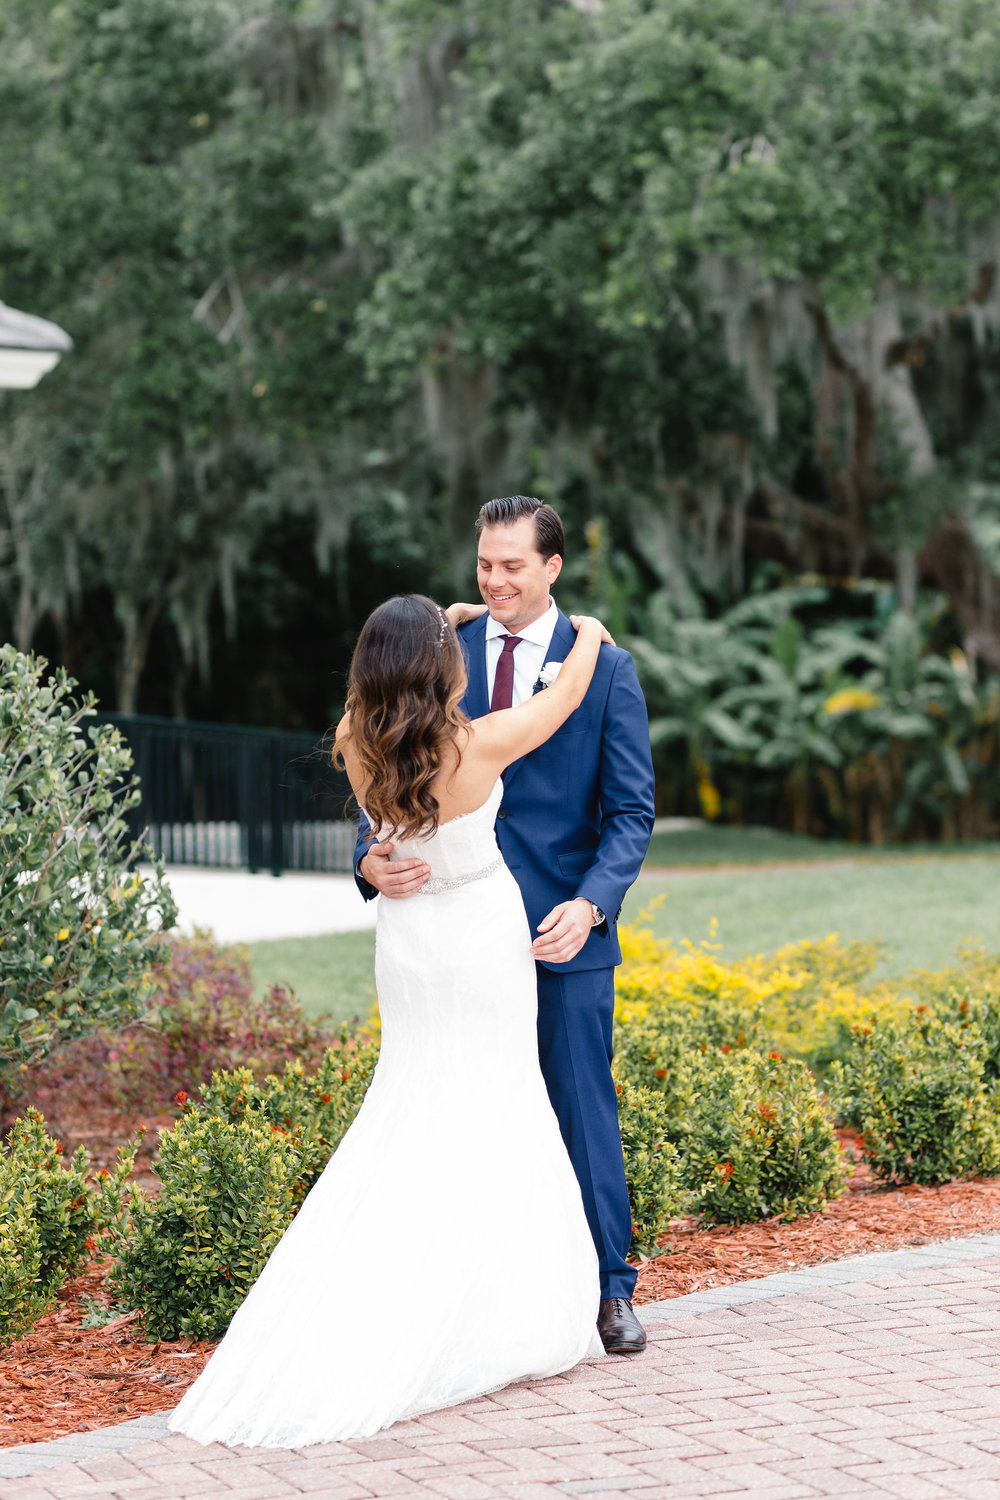 Luxmore Grande Wedding, Winter Springs, FL